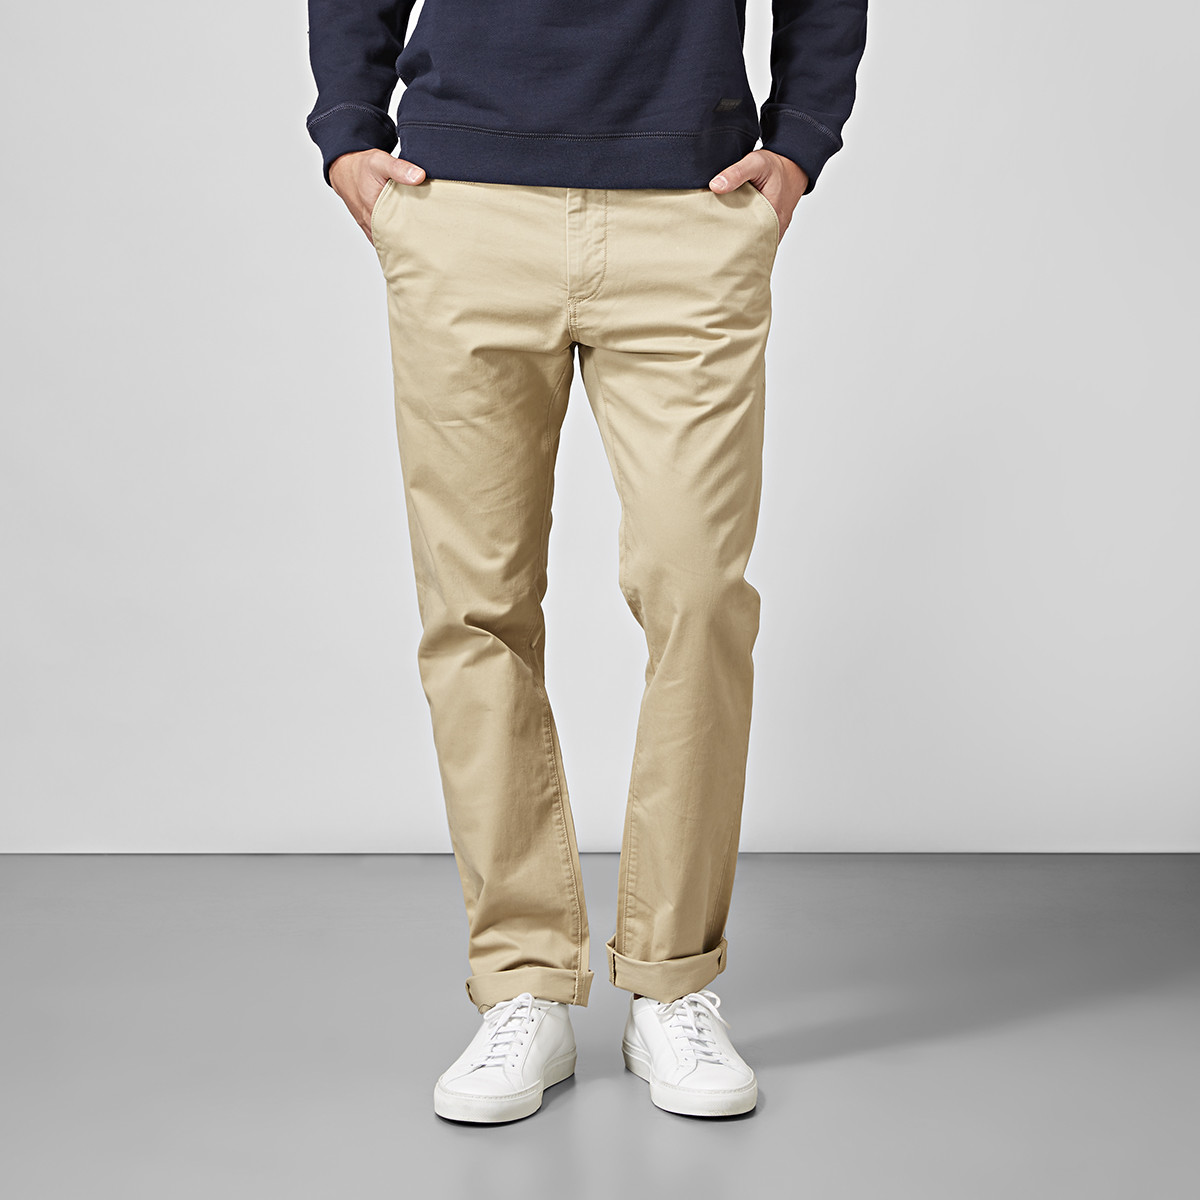 Regular fit chinos - beige | East West | Brothers.se